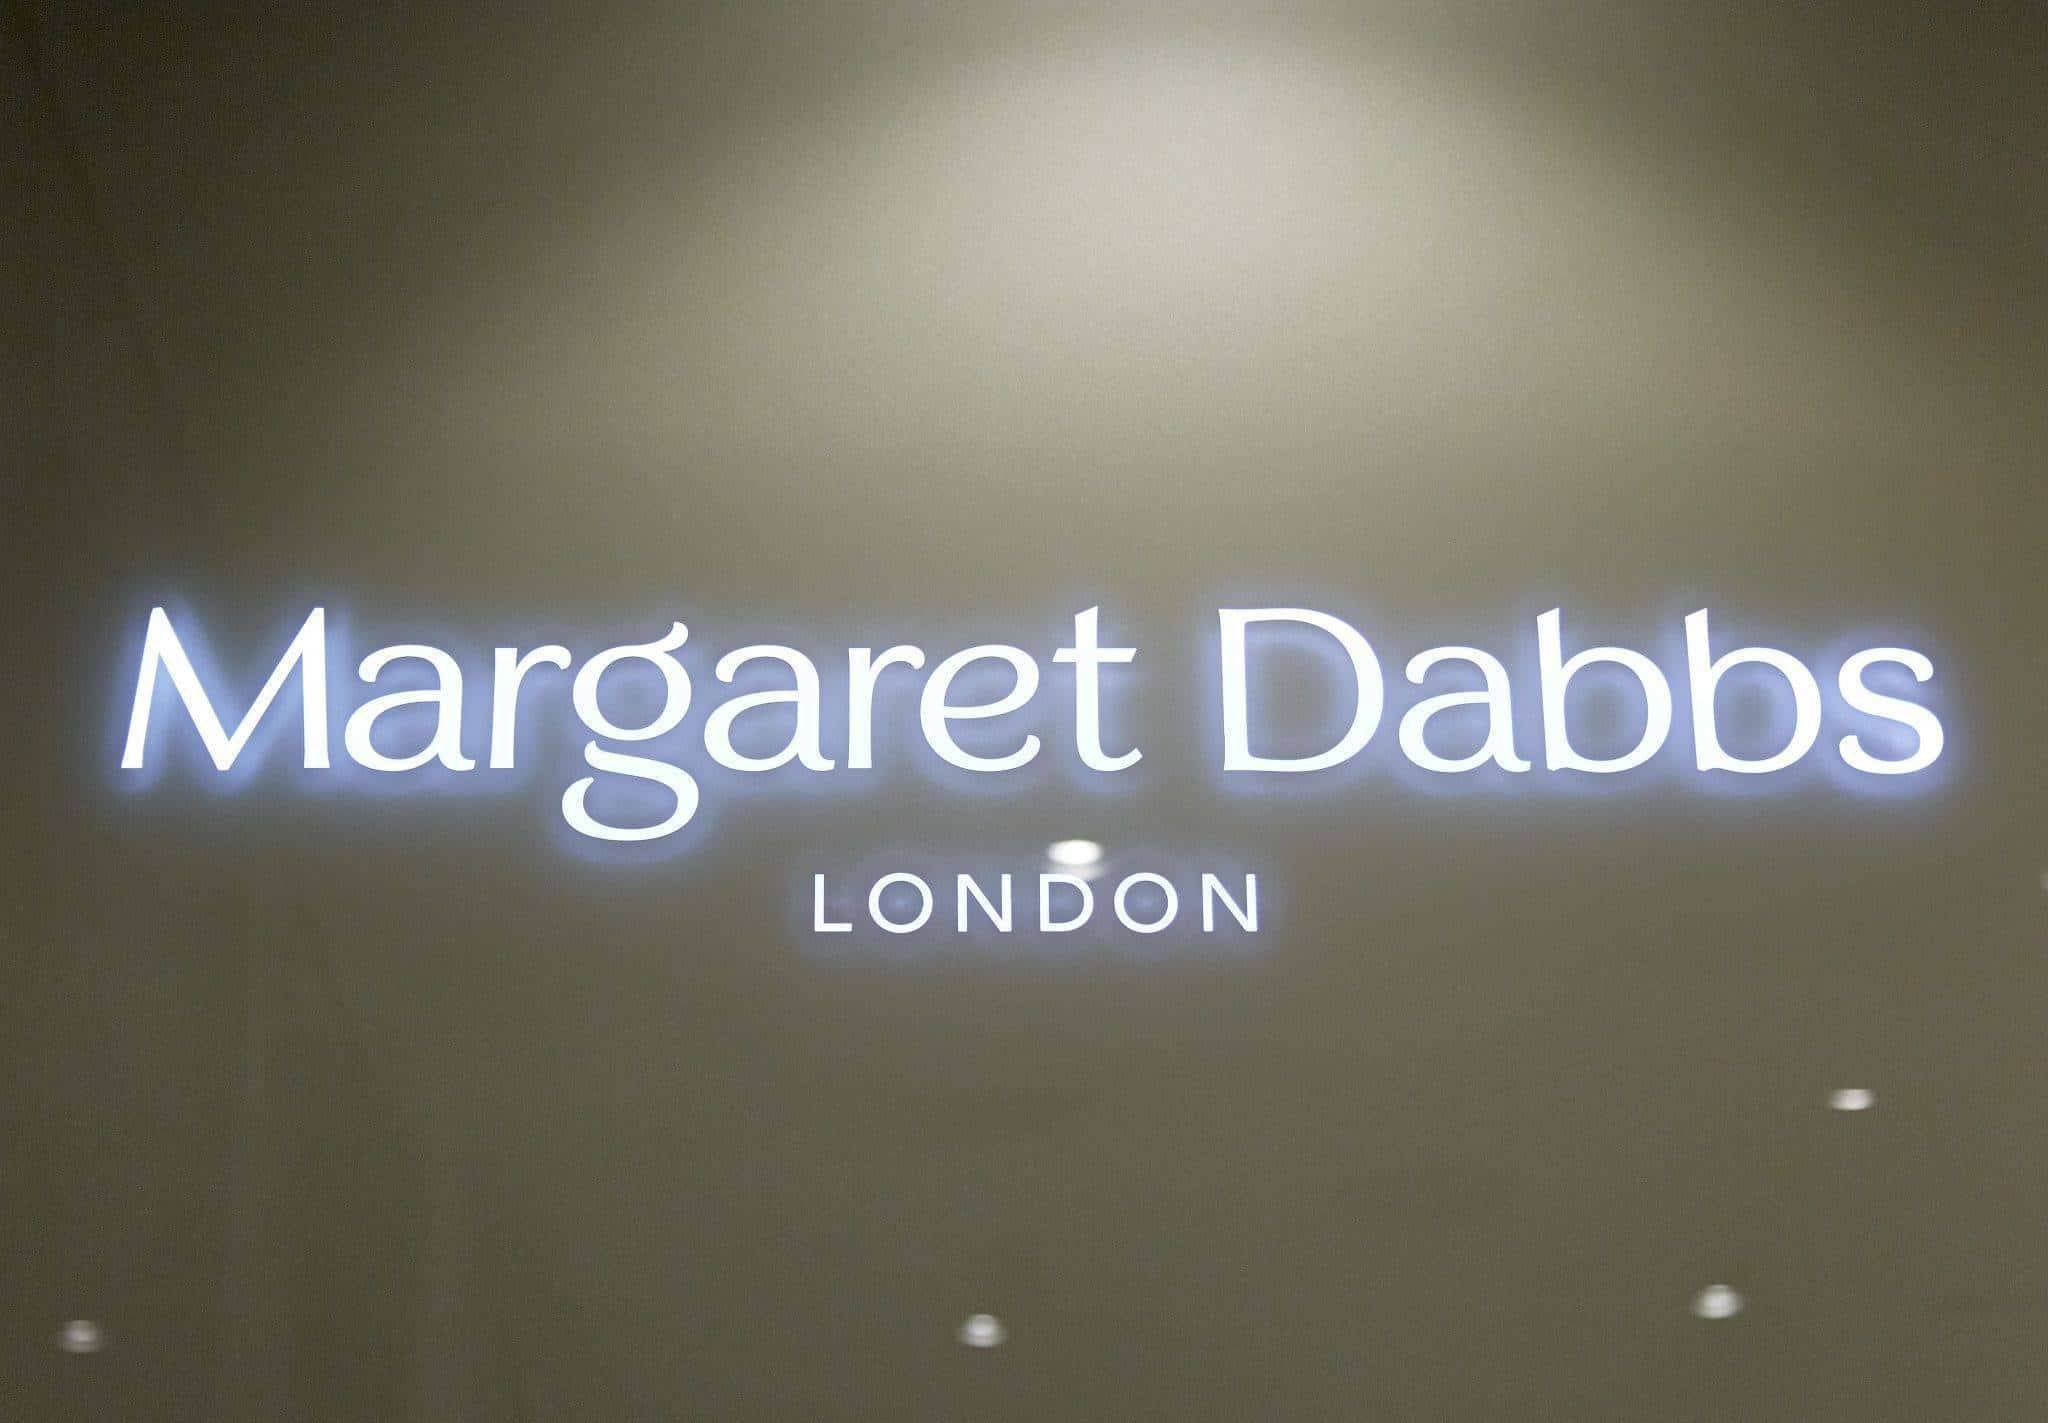 A divine treatment at Margaret Dabbs